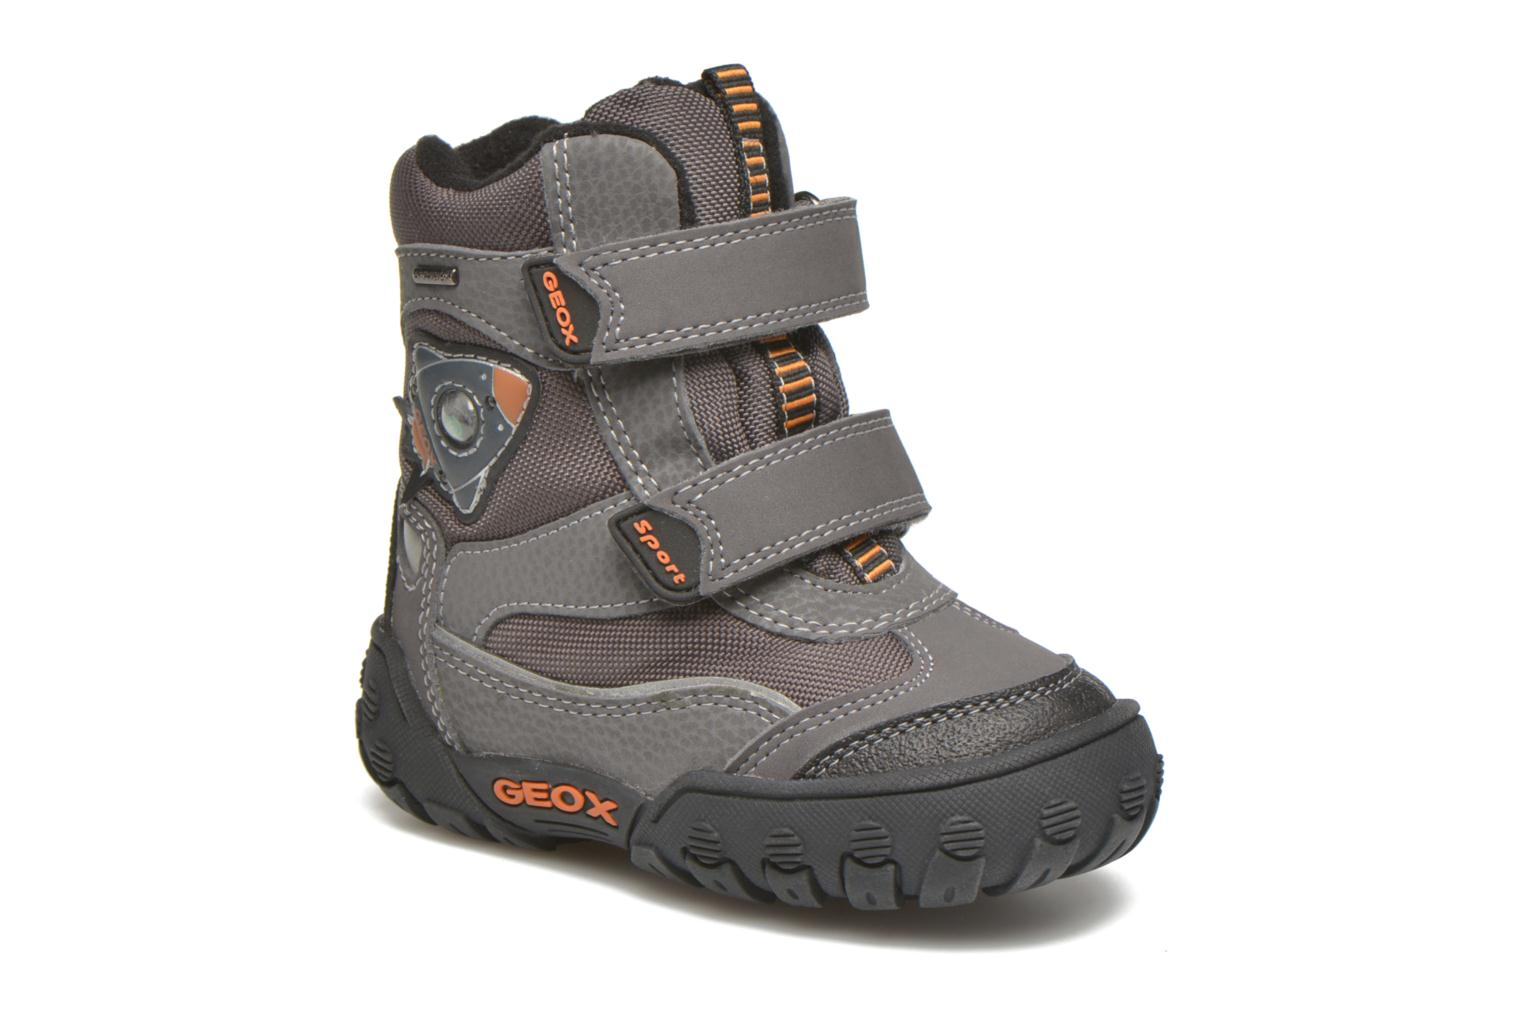 B Gulp B Boy ABX B4402D DK GREY/ORANGE